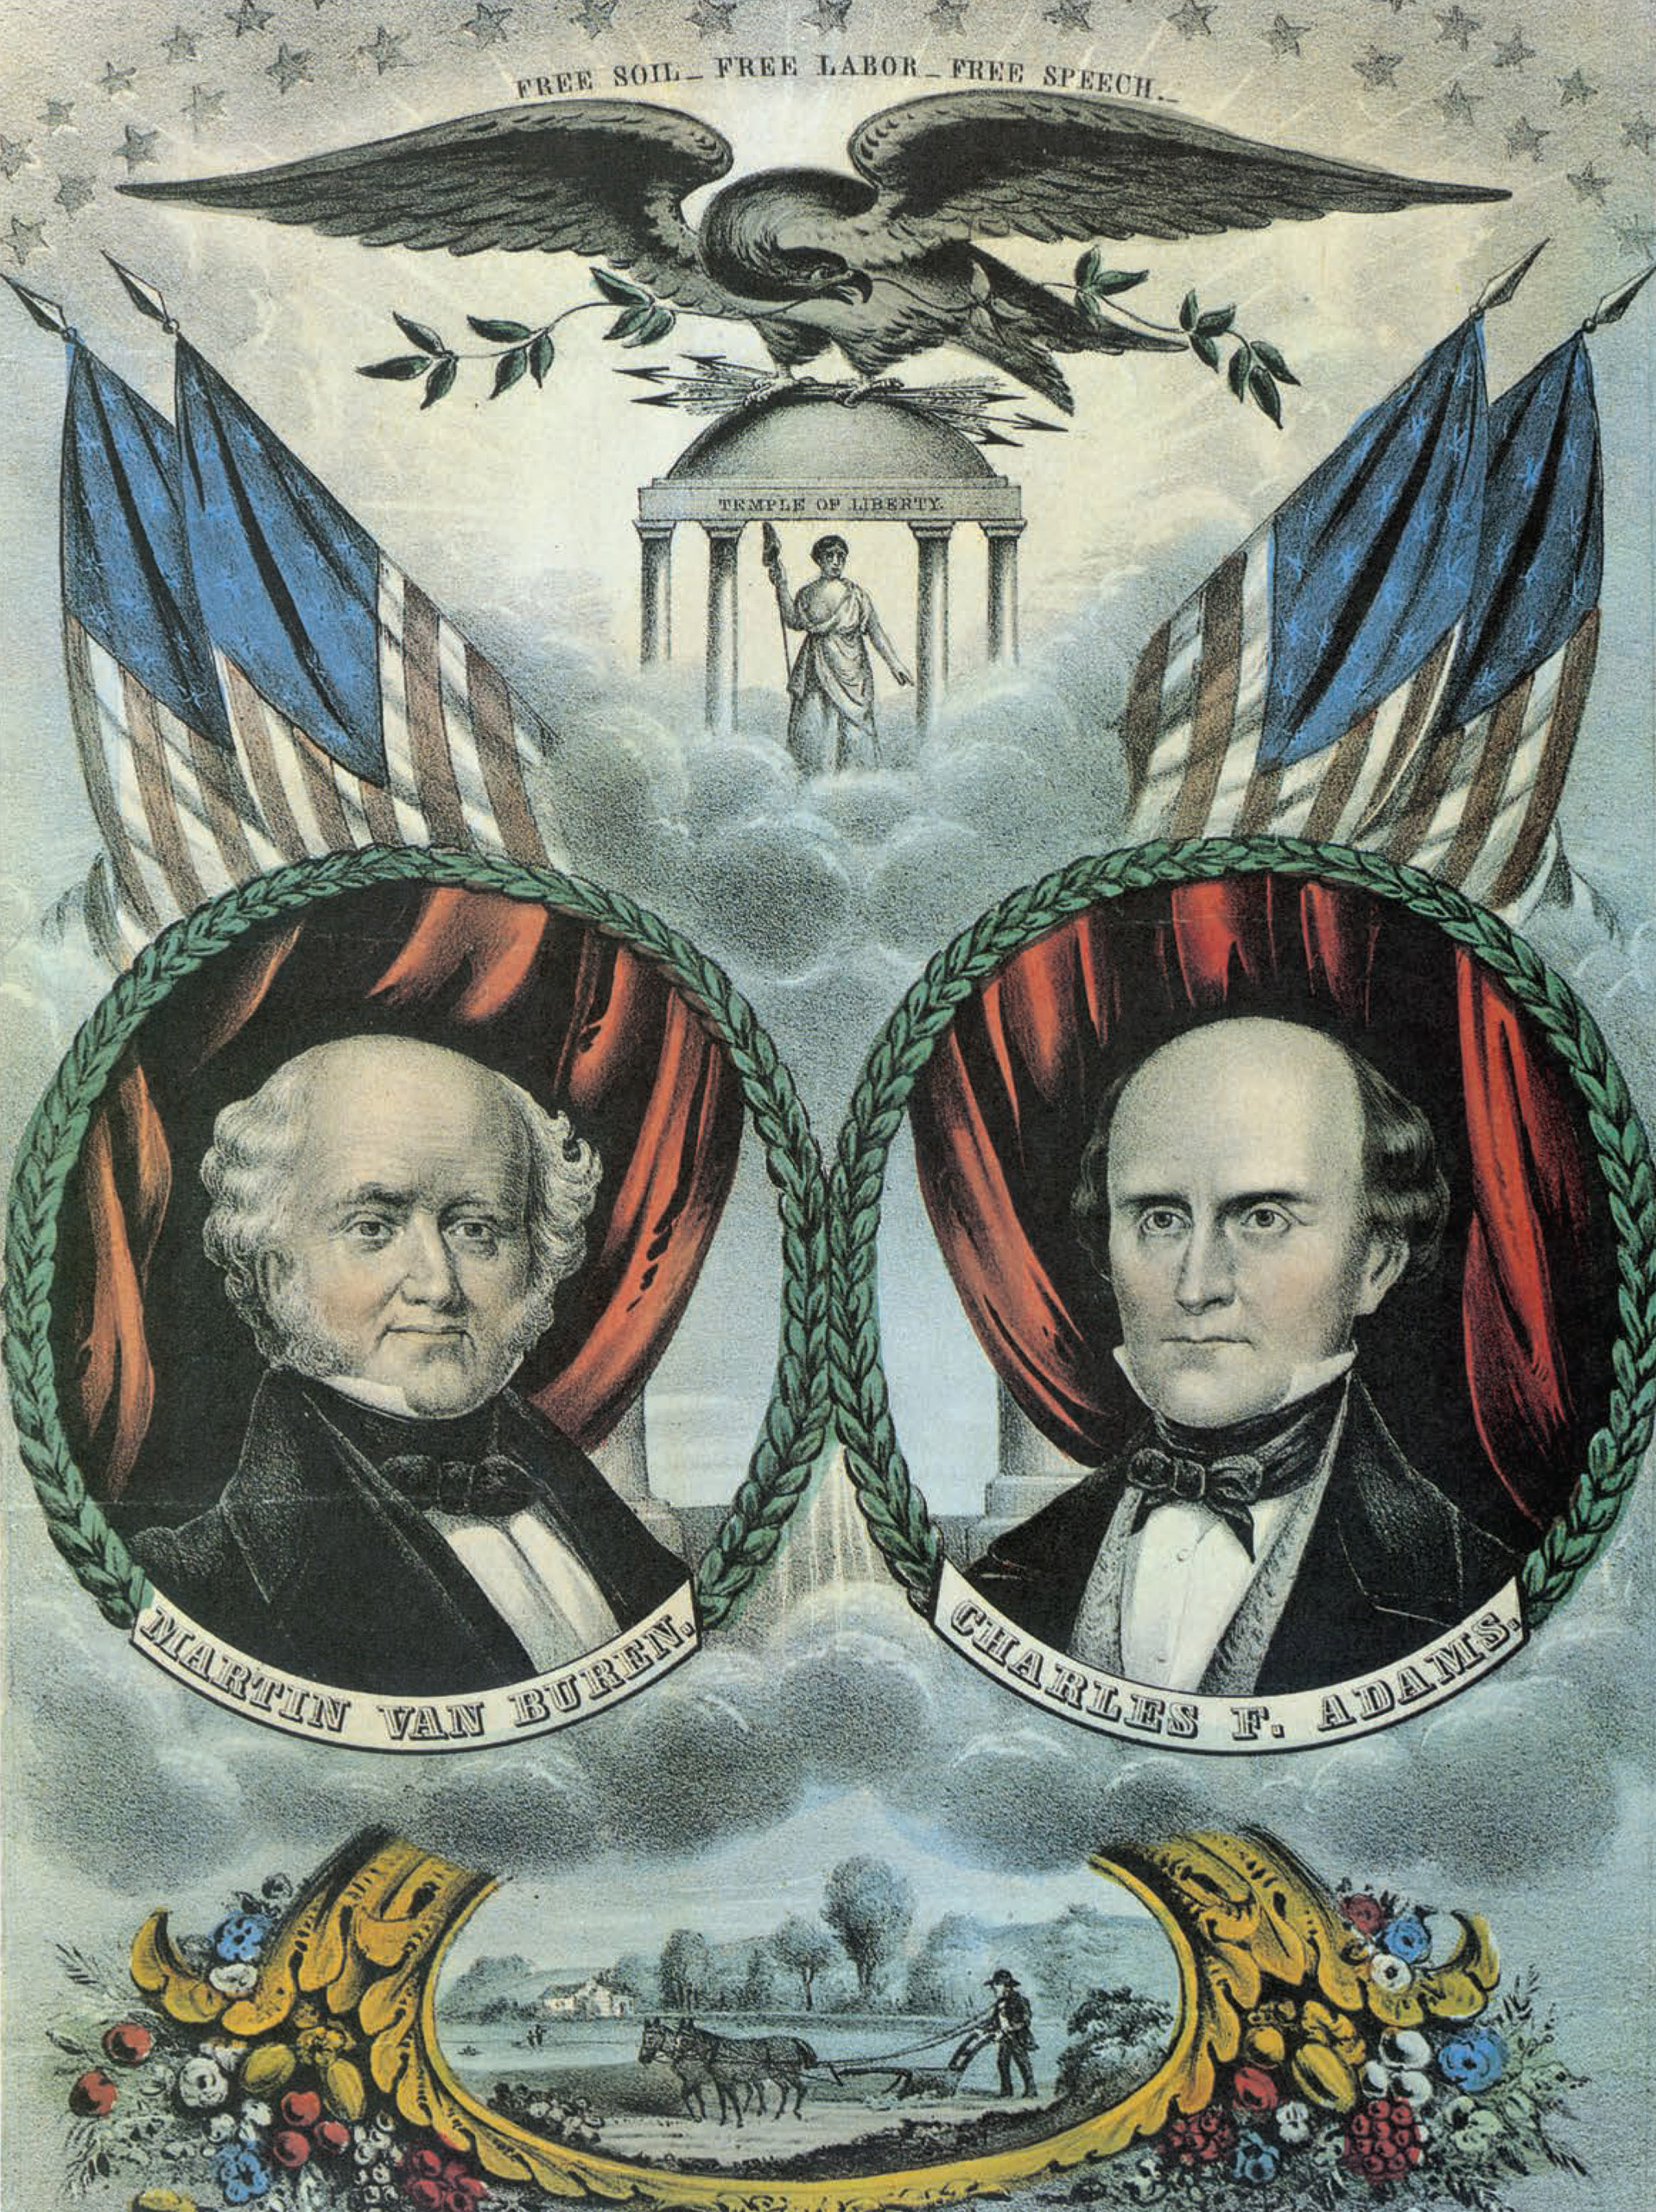 Grand Democratic Free Soil Banner. Nathaniel Currier, 1848.